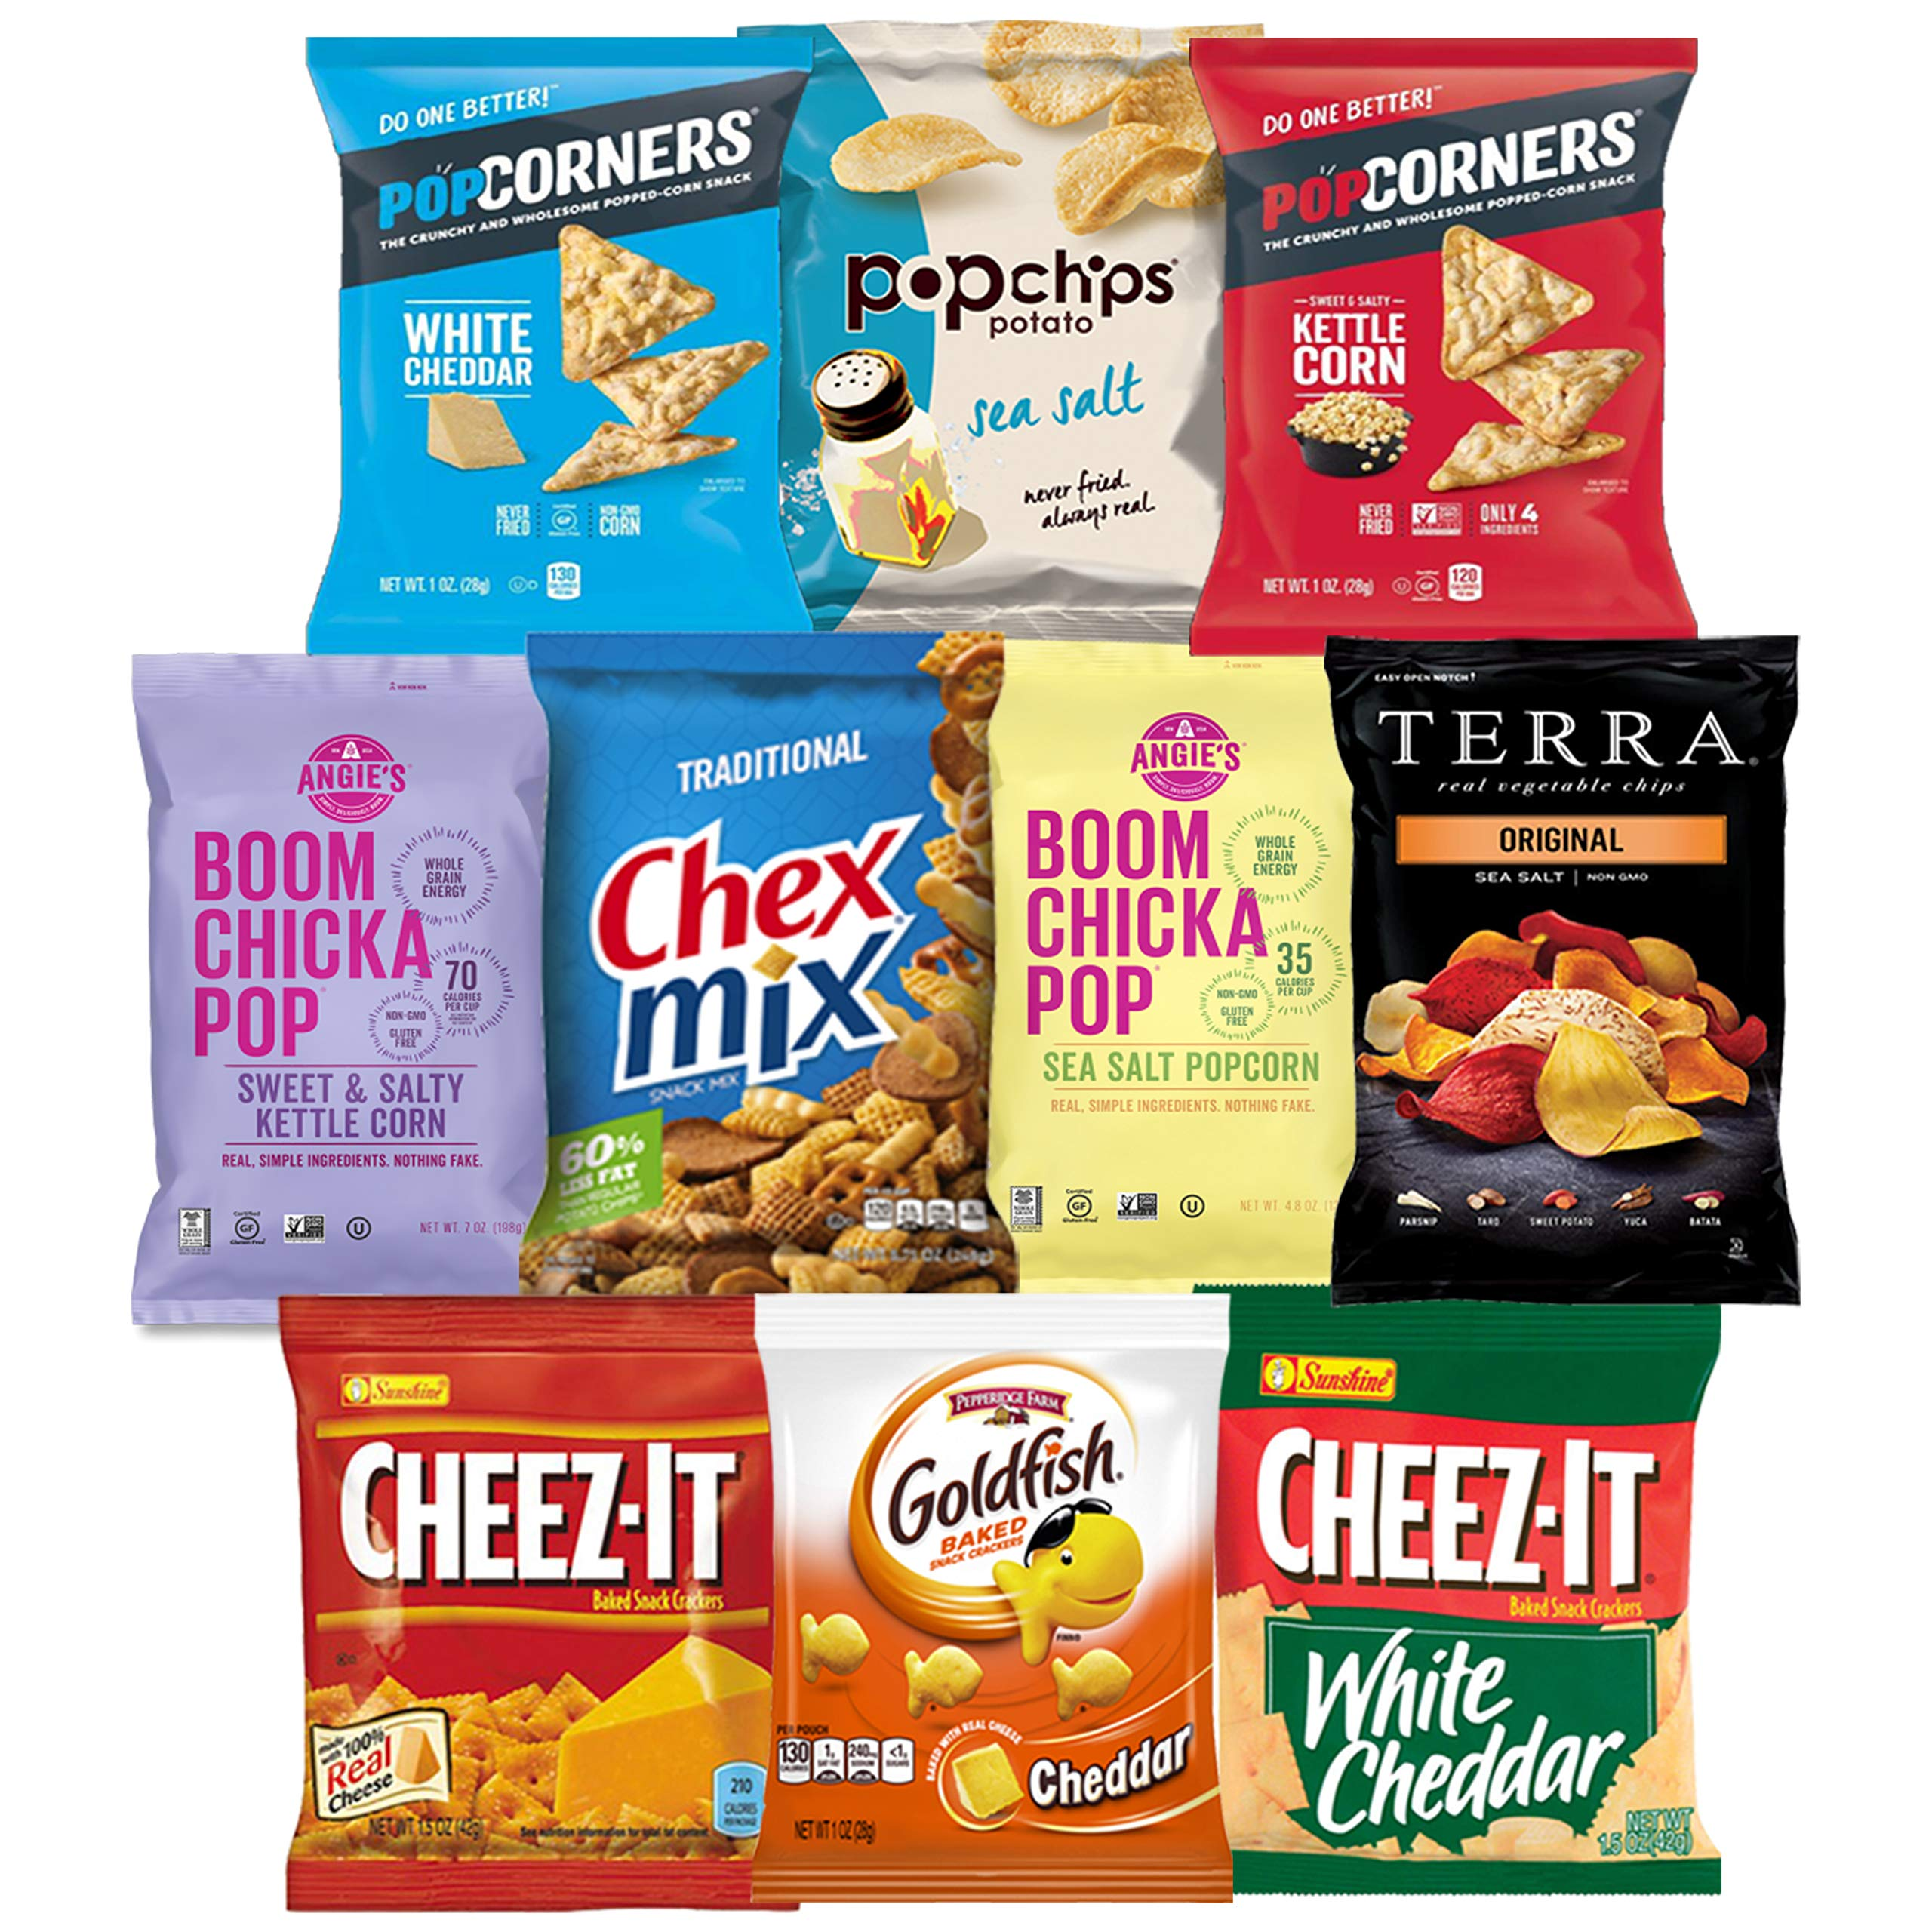 Snack Chest Care Package (40 Count) Variety Snacks Gift Box - College Students, Military, Work or Home - Over 3 Pounds of Chips Cookies & Candy! by Snack Chest (Image #1)